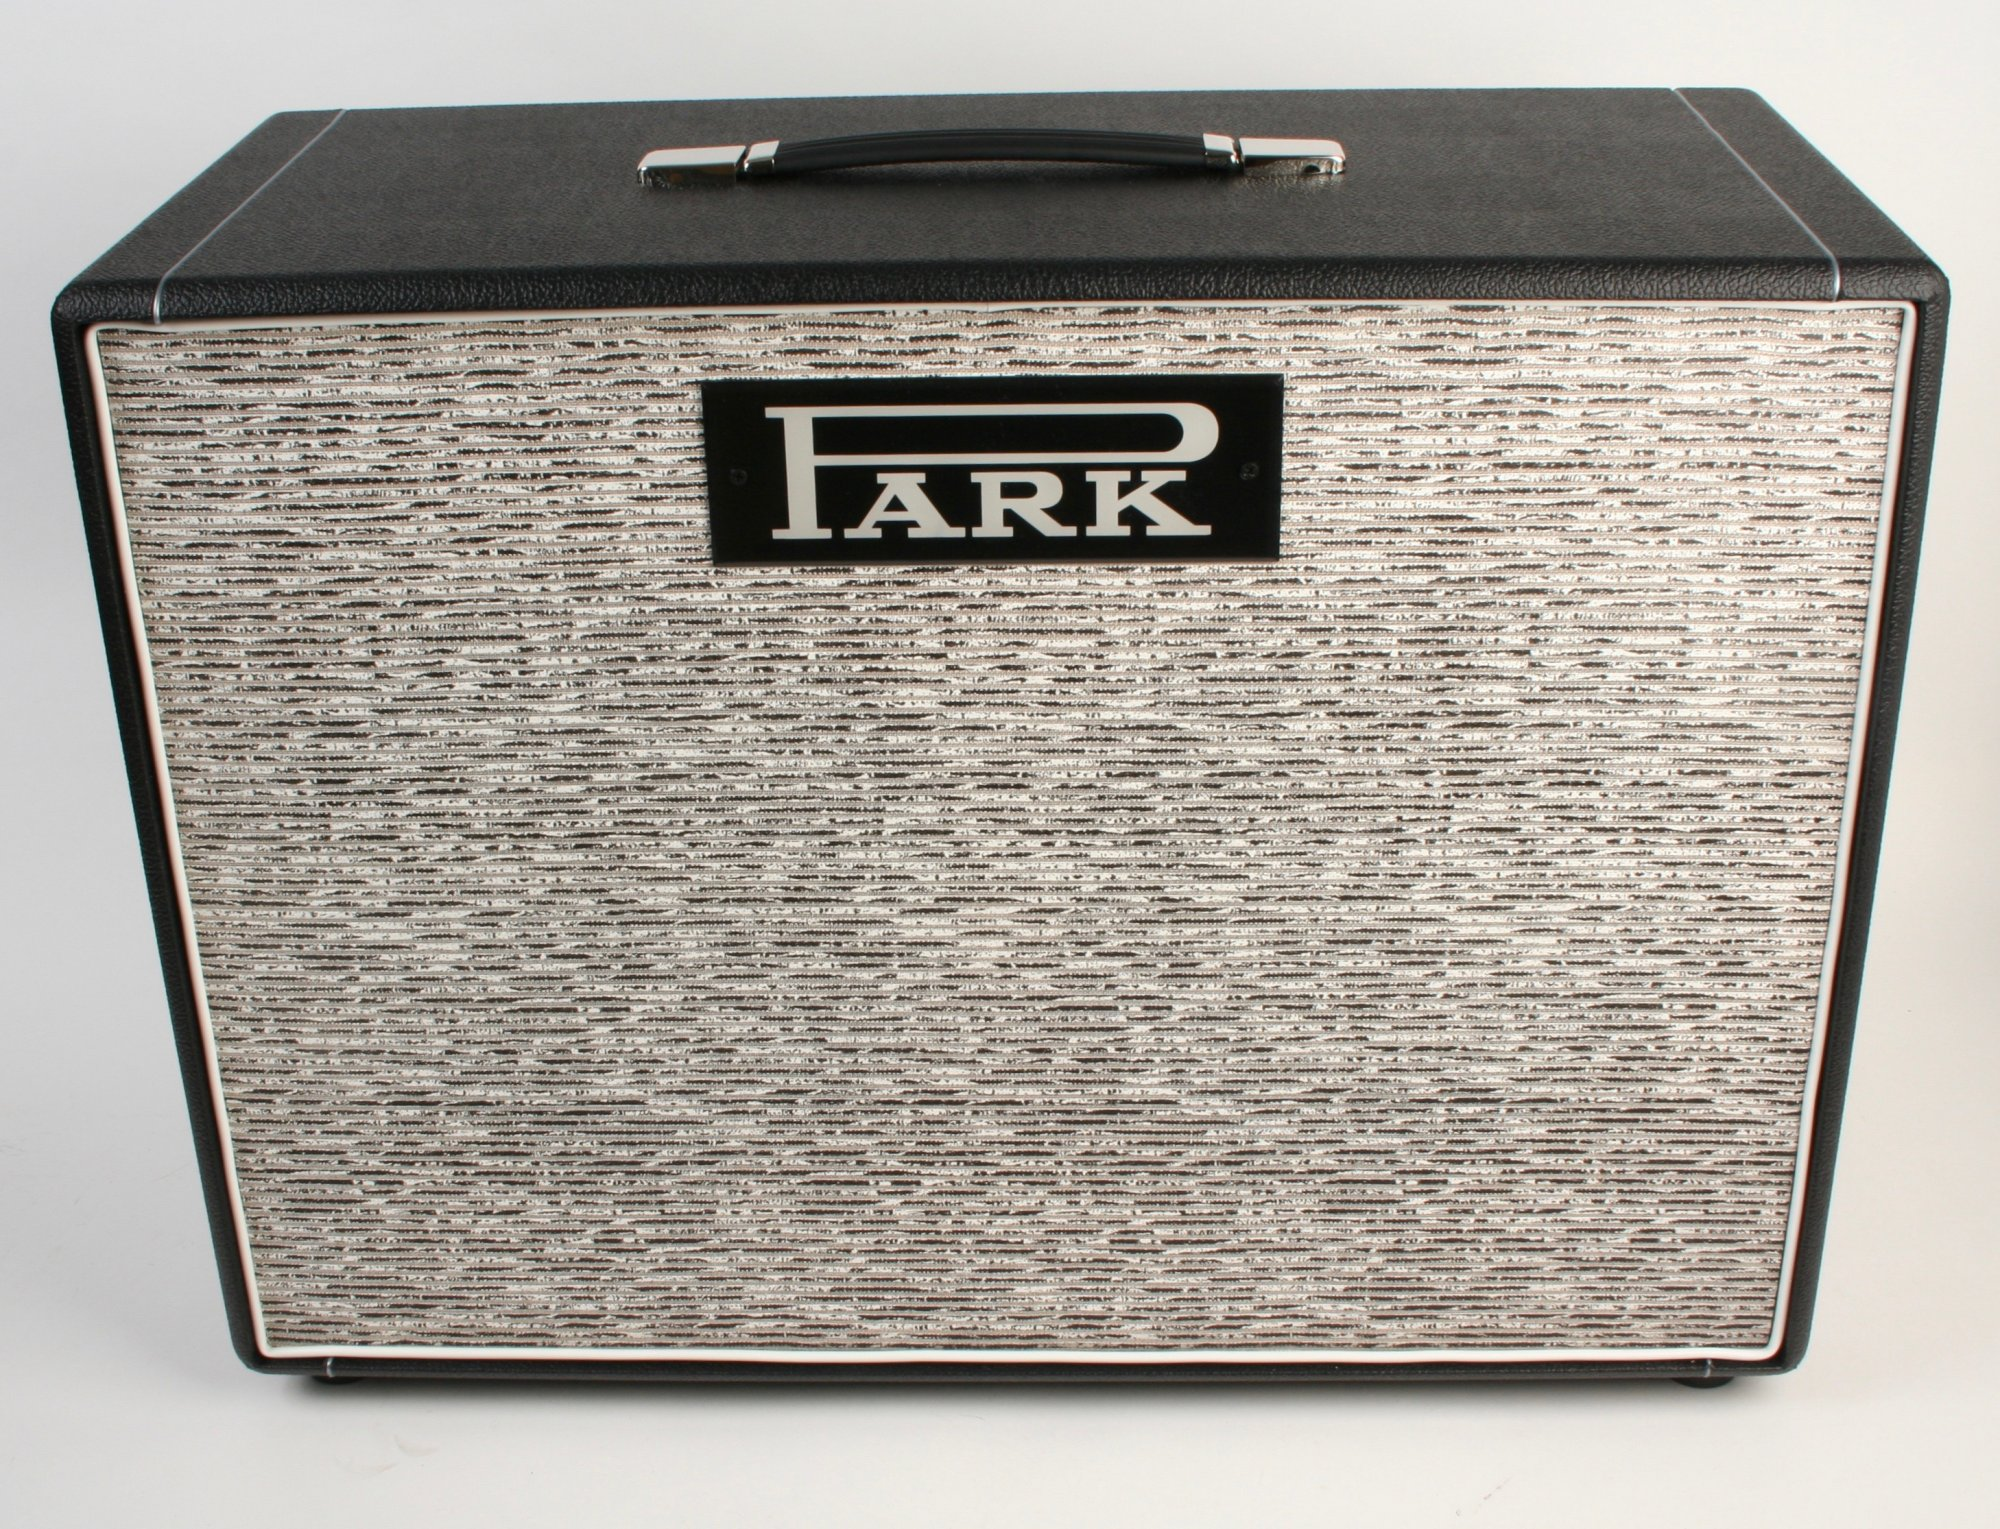 Park Amplifiers 2x12 Limited Edition Cab EC Collins Grill Cloth Celestion Creambacks